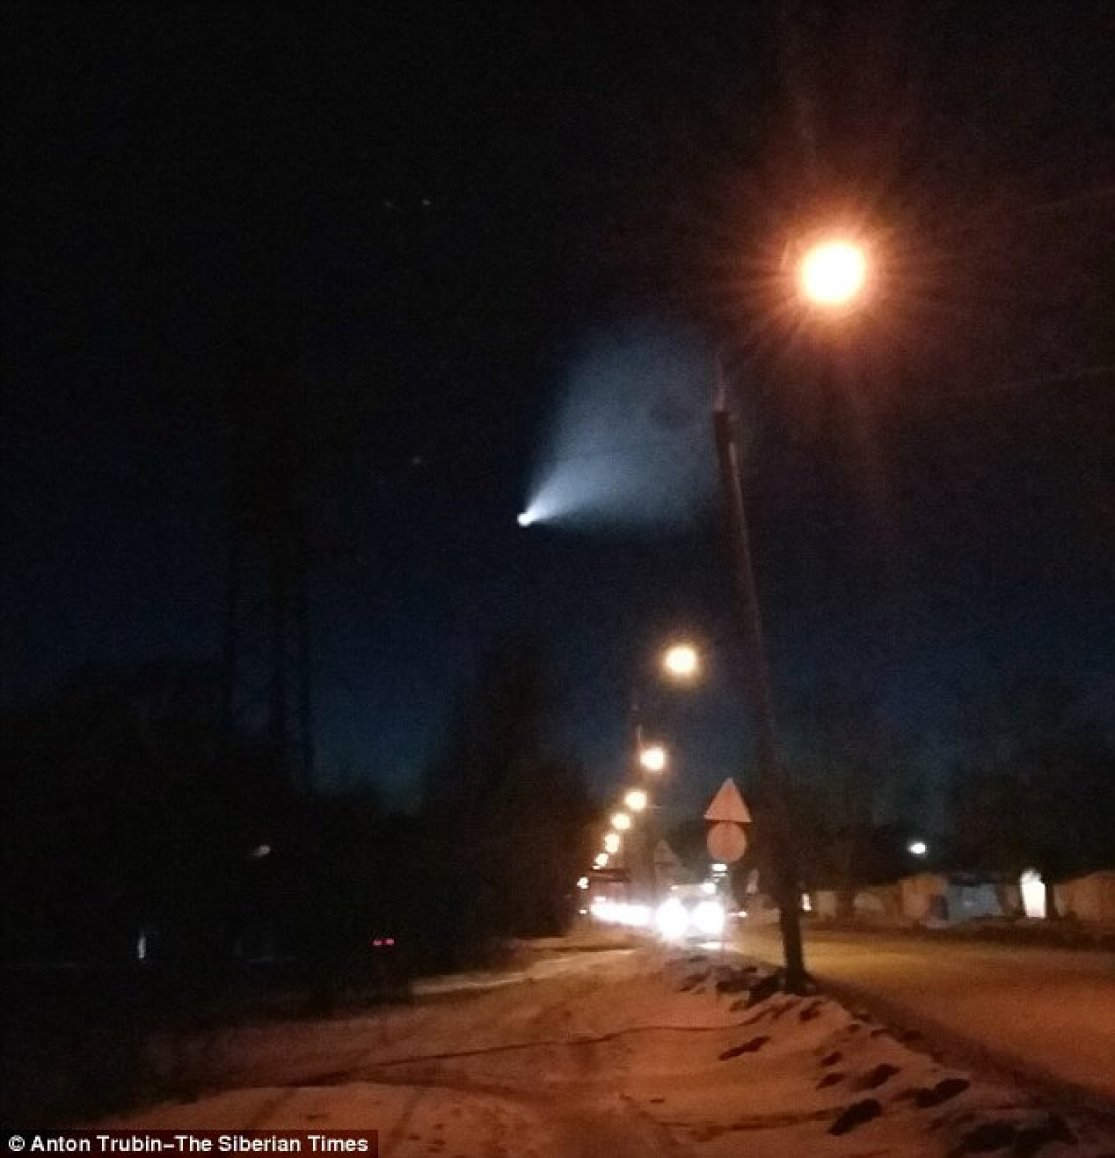 Cutting through the night skyline, the mystery object was witnessed by plenty of surprised bystanders